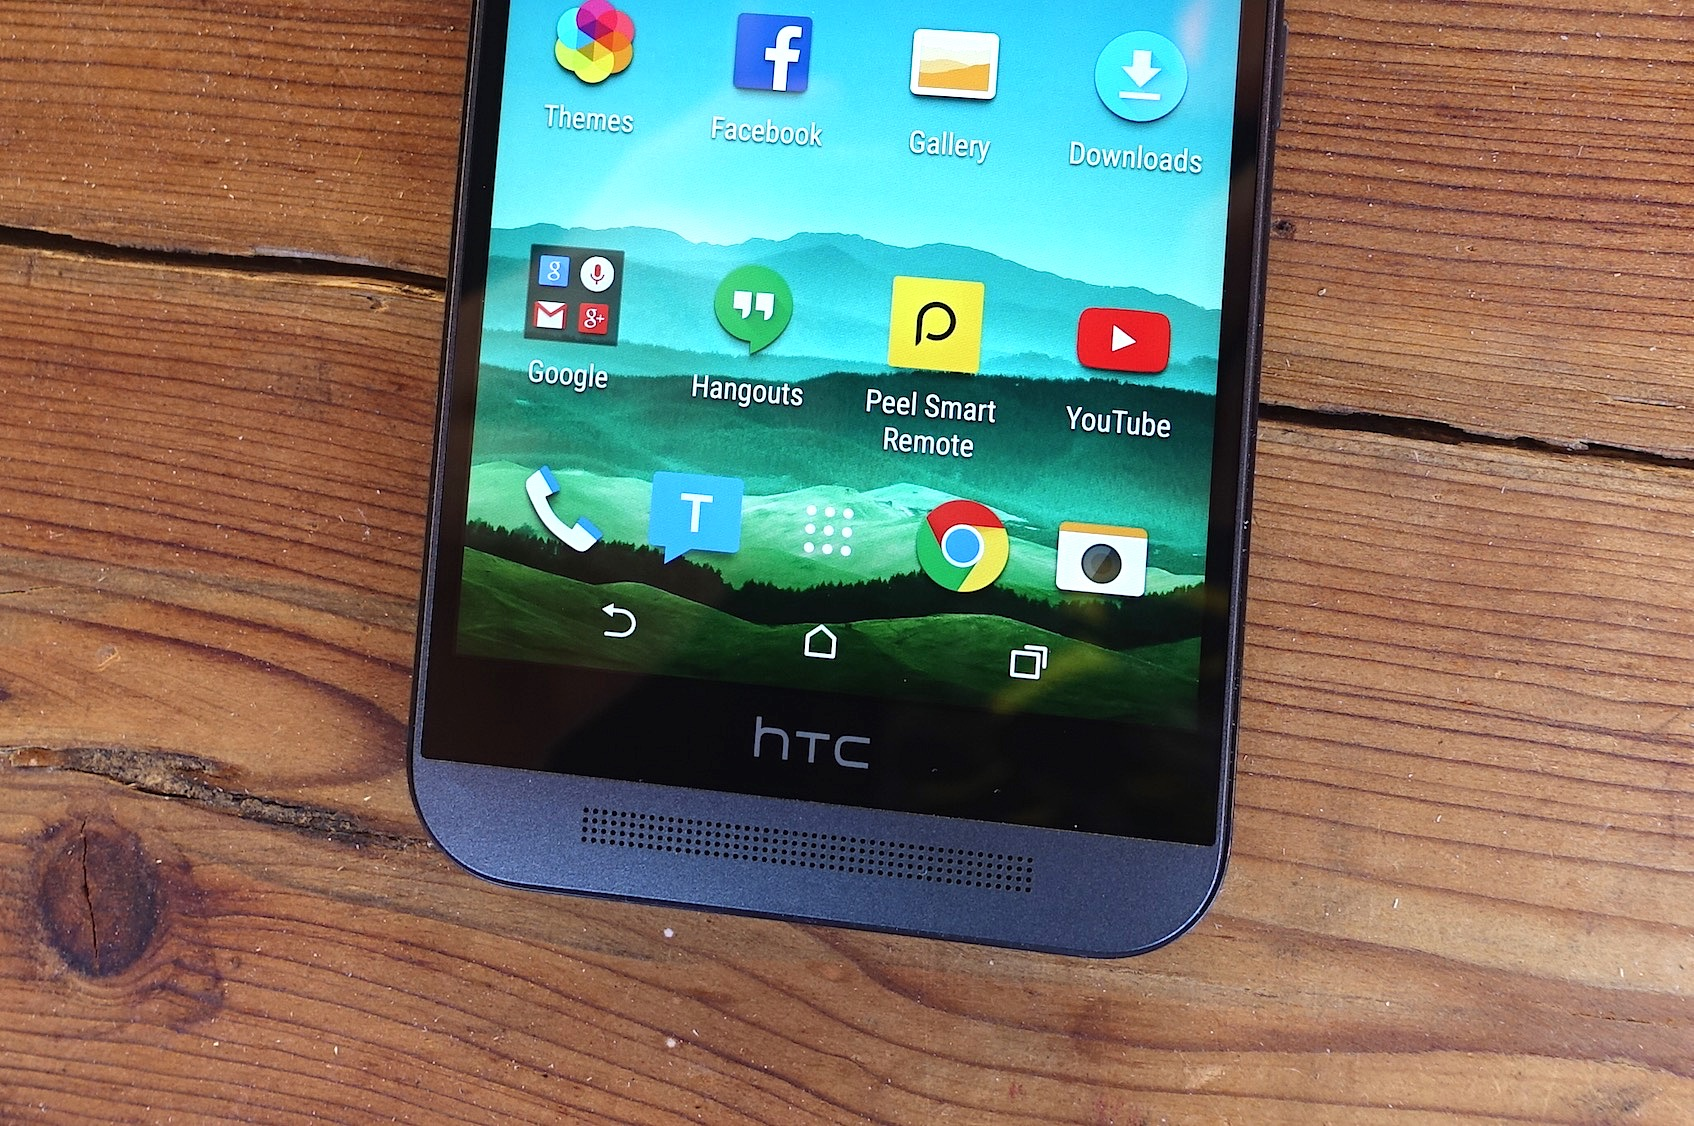 How To Change The Text Message App On The Htc One M9